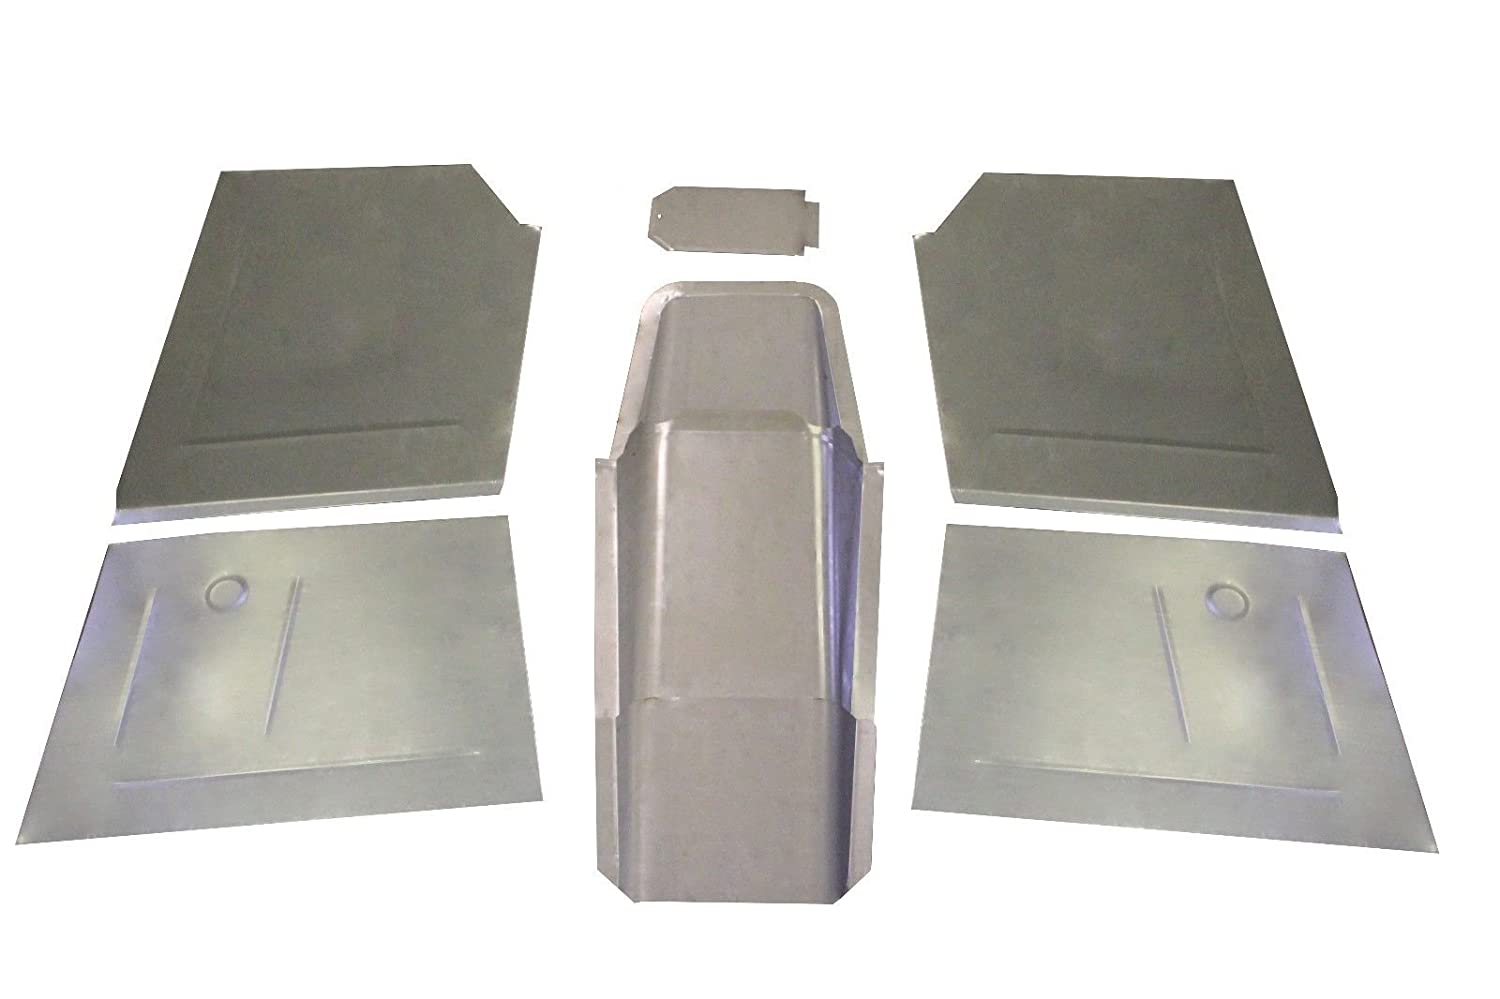 Motor City Sheet Metal Works With 1941-1948 CHEVY OLDSMOBILE PONTIAC Floor Pans,Toe Boards,Trans hump 8 PC KIT